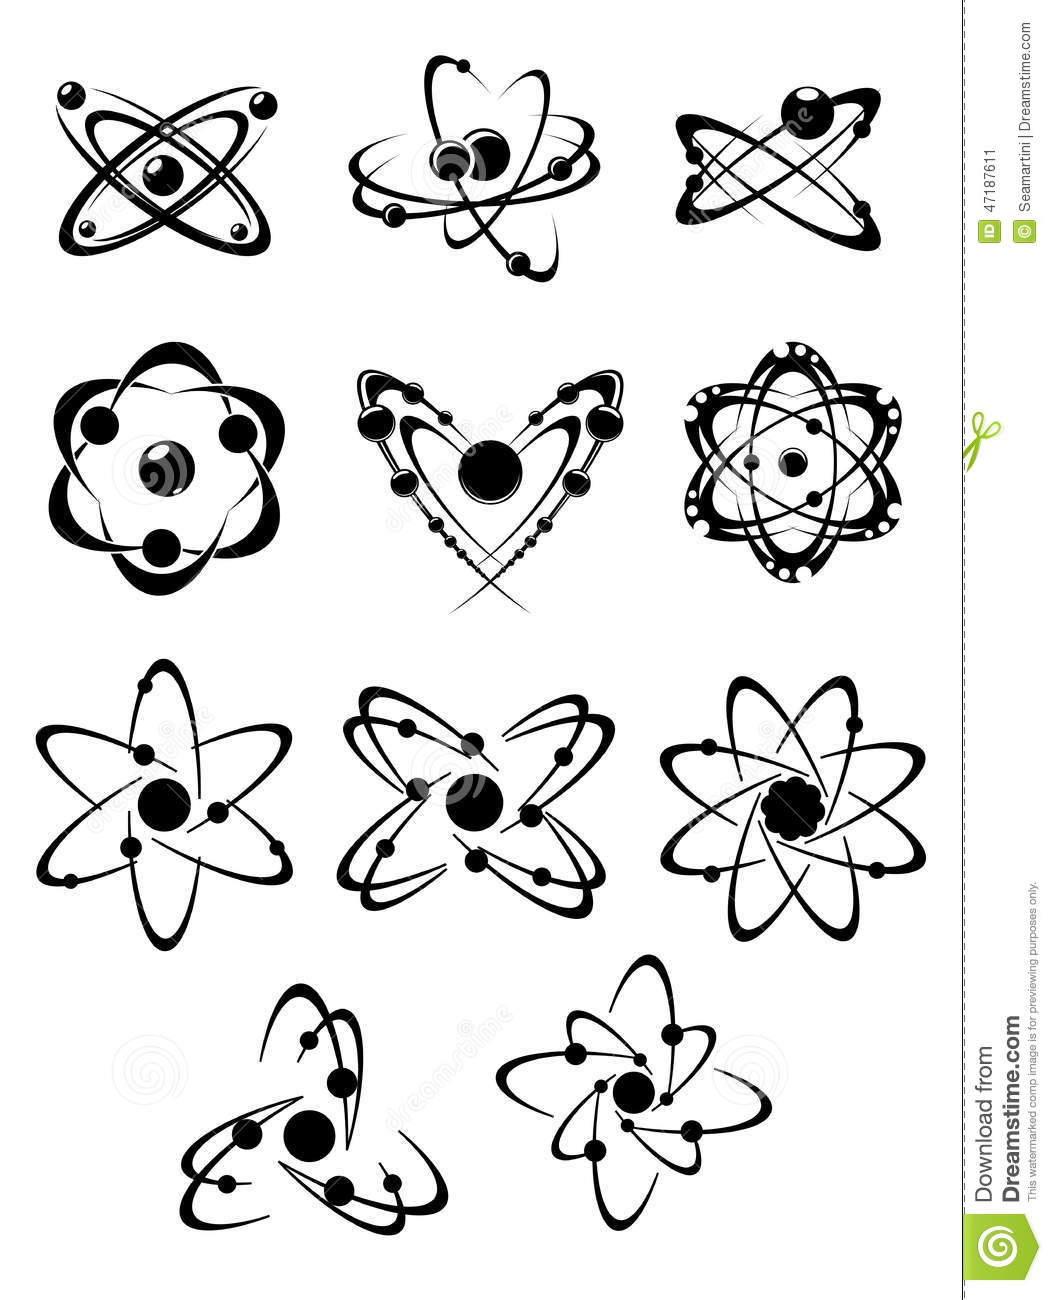 Atoms Or Molecules Symbols Stock Vector Image Of Design